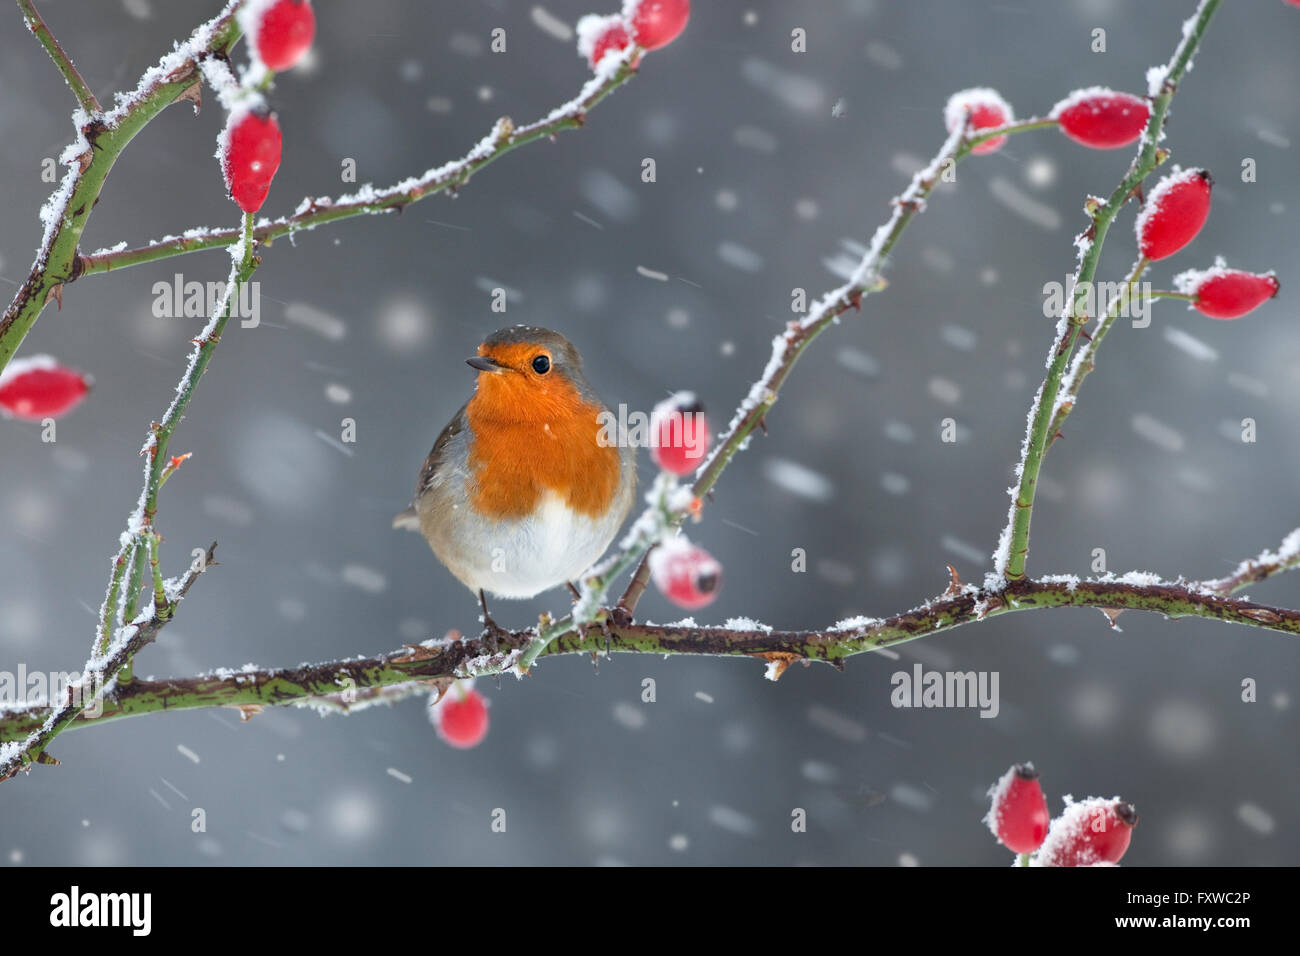 Robin Erithacus Rubecula on rosehips in snow storm - Stock Image